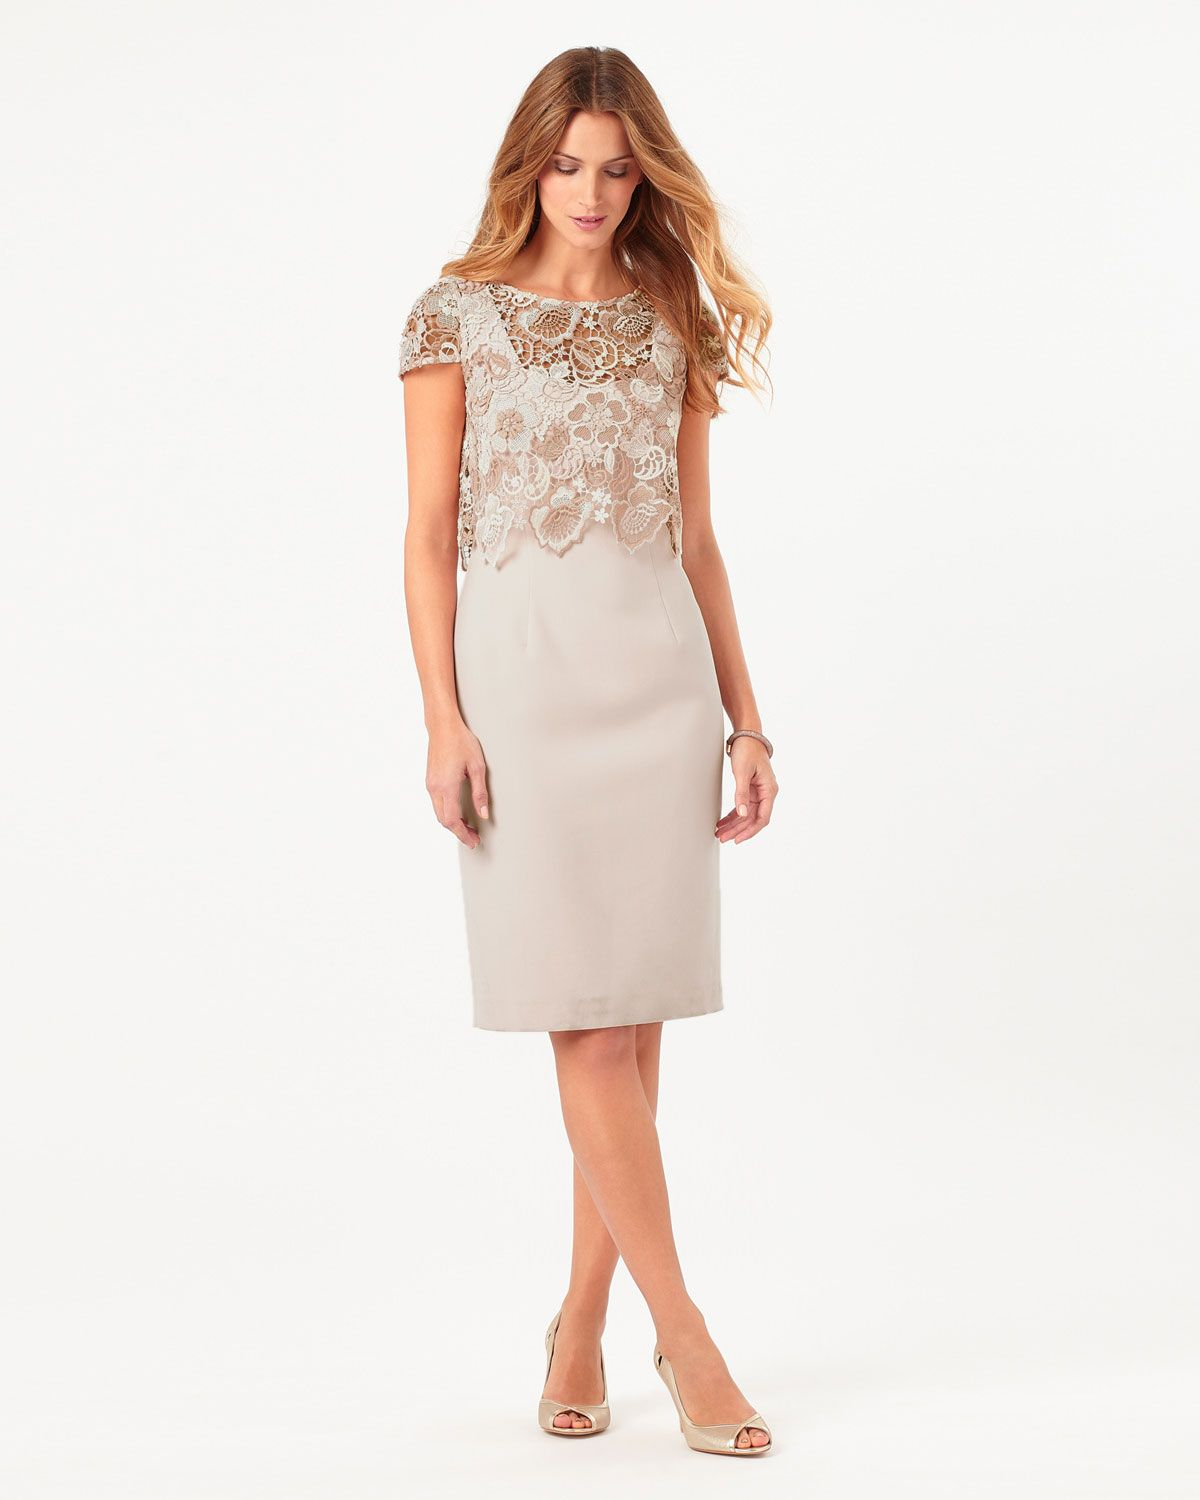 Ensure You Look As Stunning As They Do On The Special Day